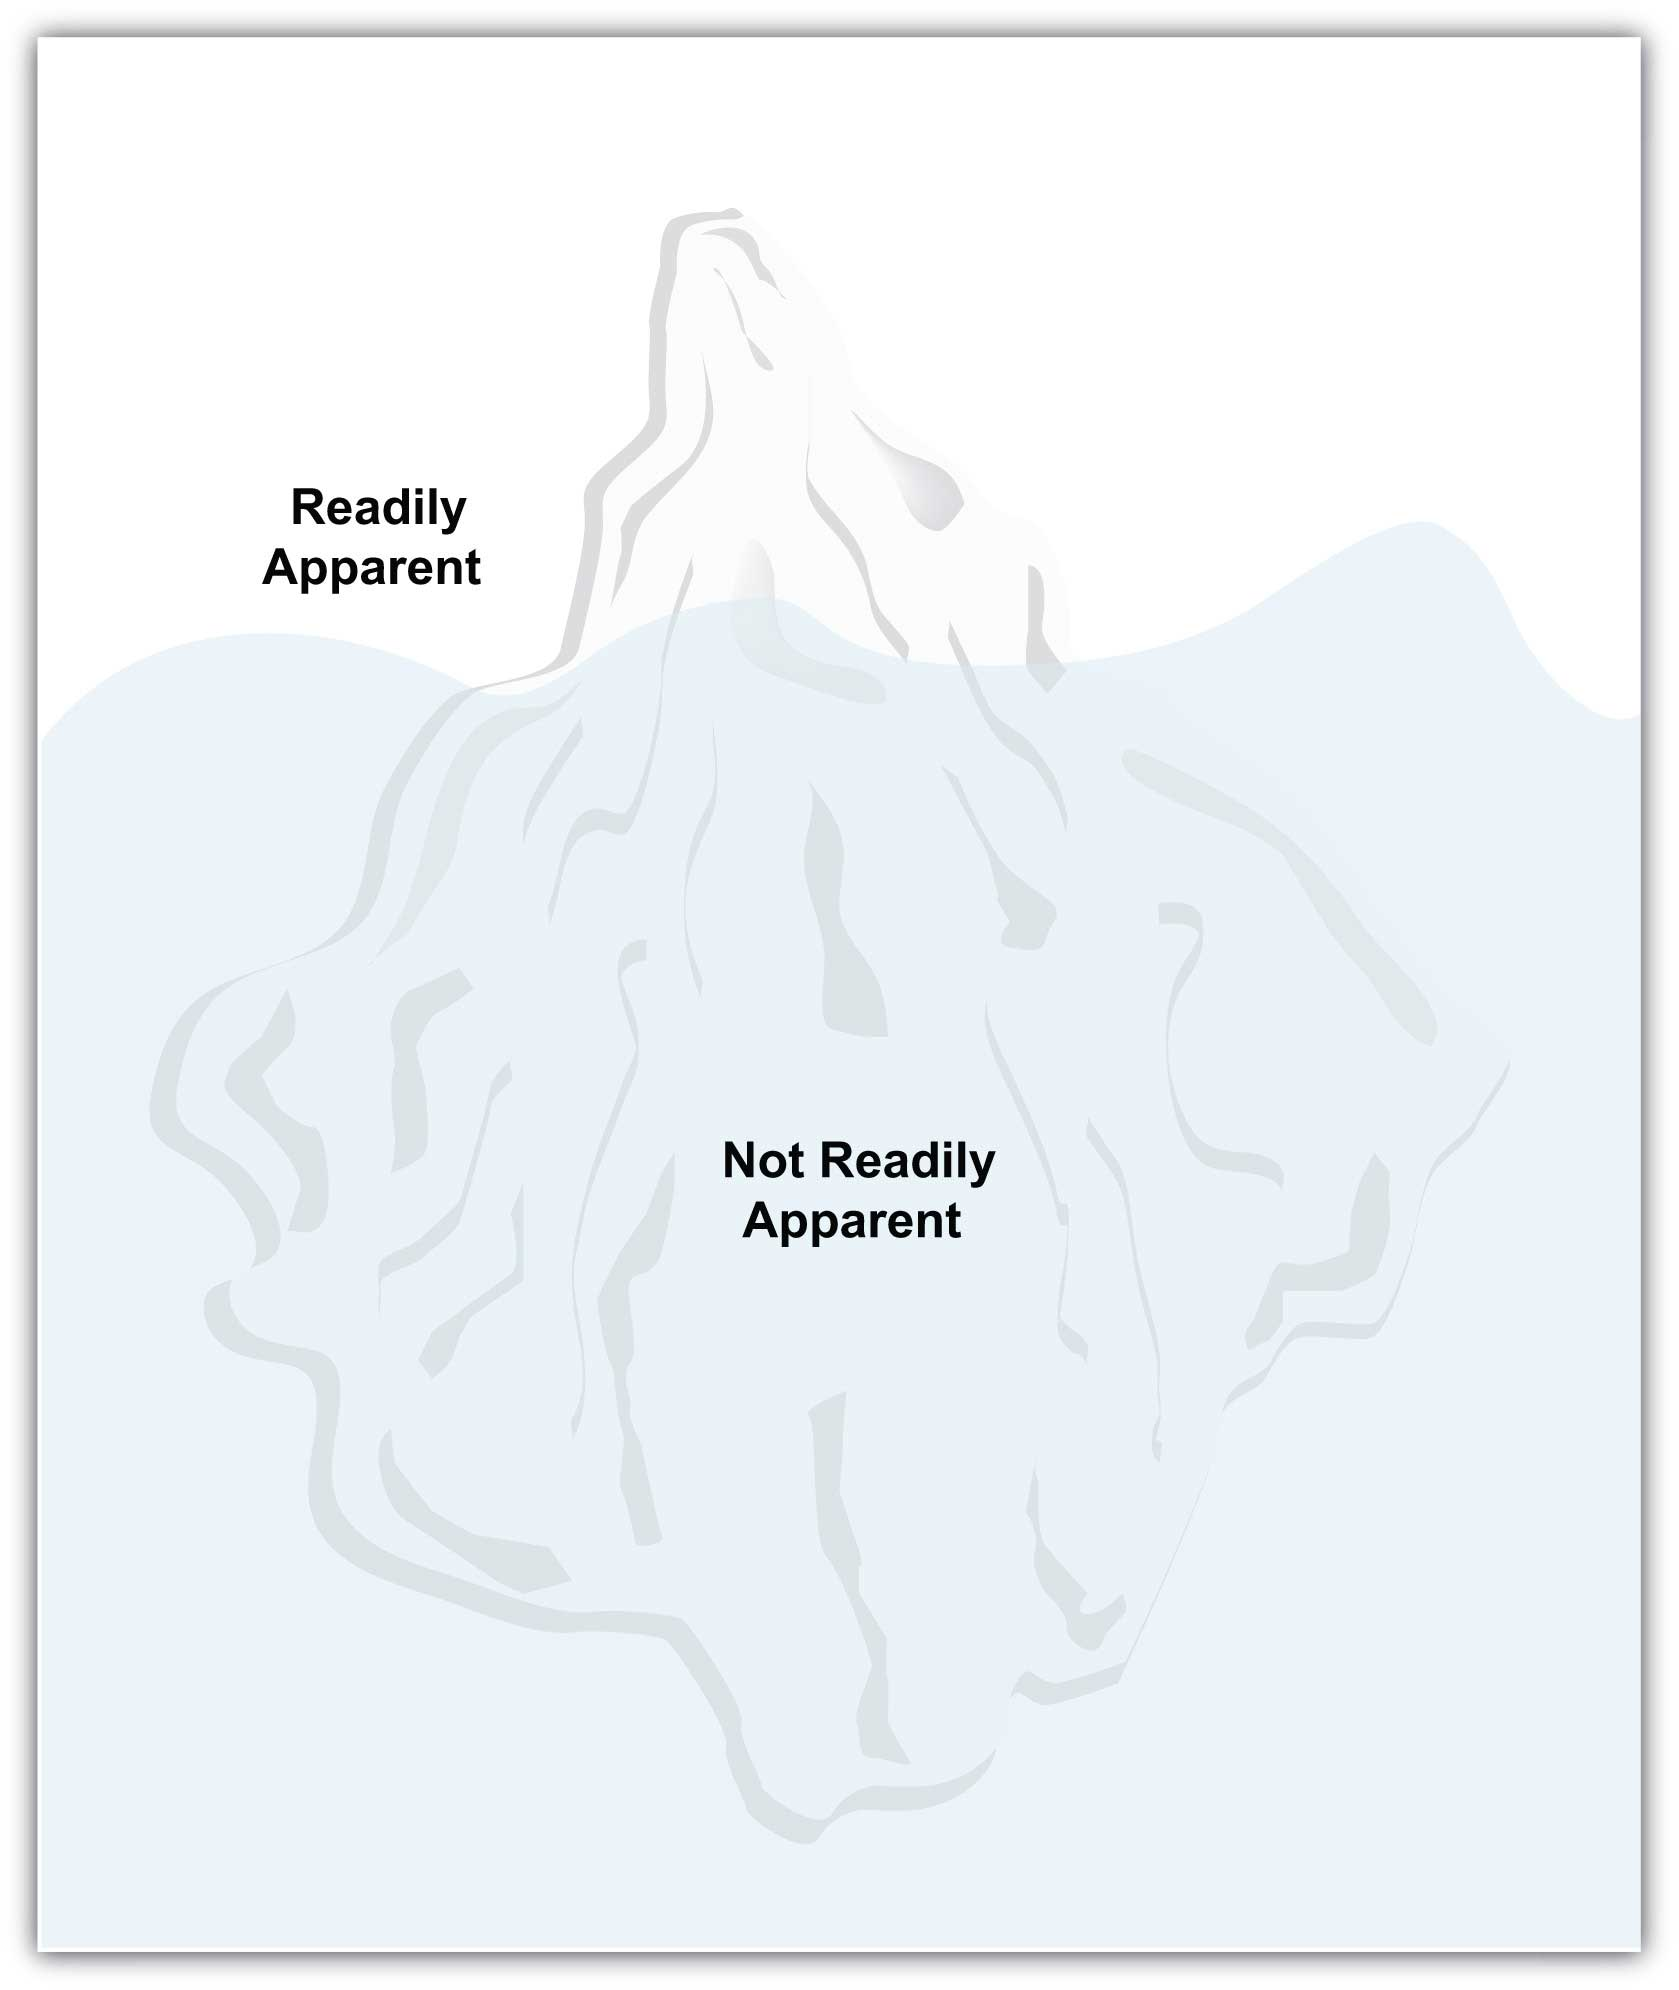 The American Foreign Service Manual Iceberg Model showing the tip of the iceberg is what is readily apparent, and everything under water is not readily apparent